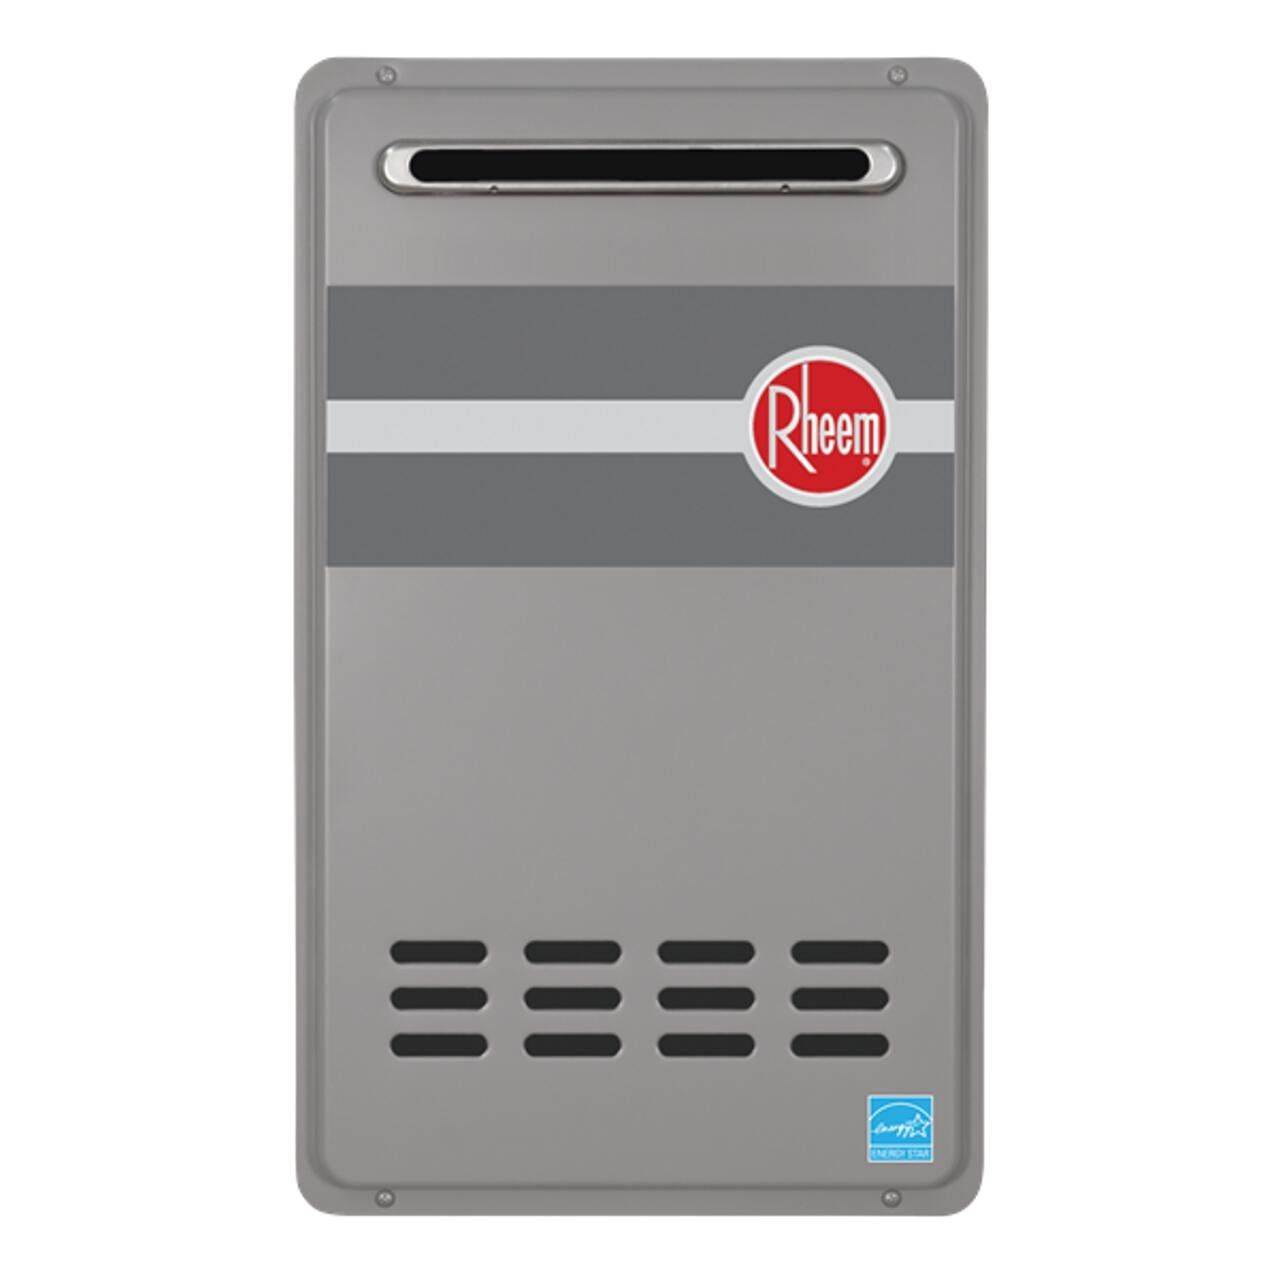 Rheem Rtg 84xln 8 4 Gpm Low Nox Outdoor Tankless Natural Gas Water Heater Tankles Gas Waterheaters A Natural Gas Water Heater Gas Water Heater Water Heater